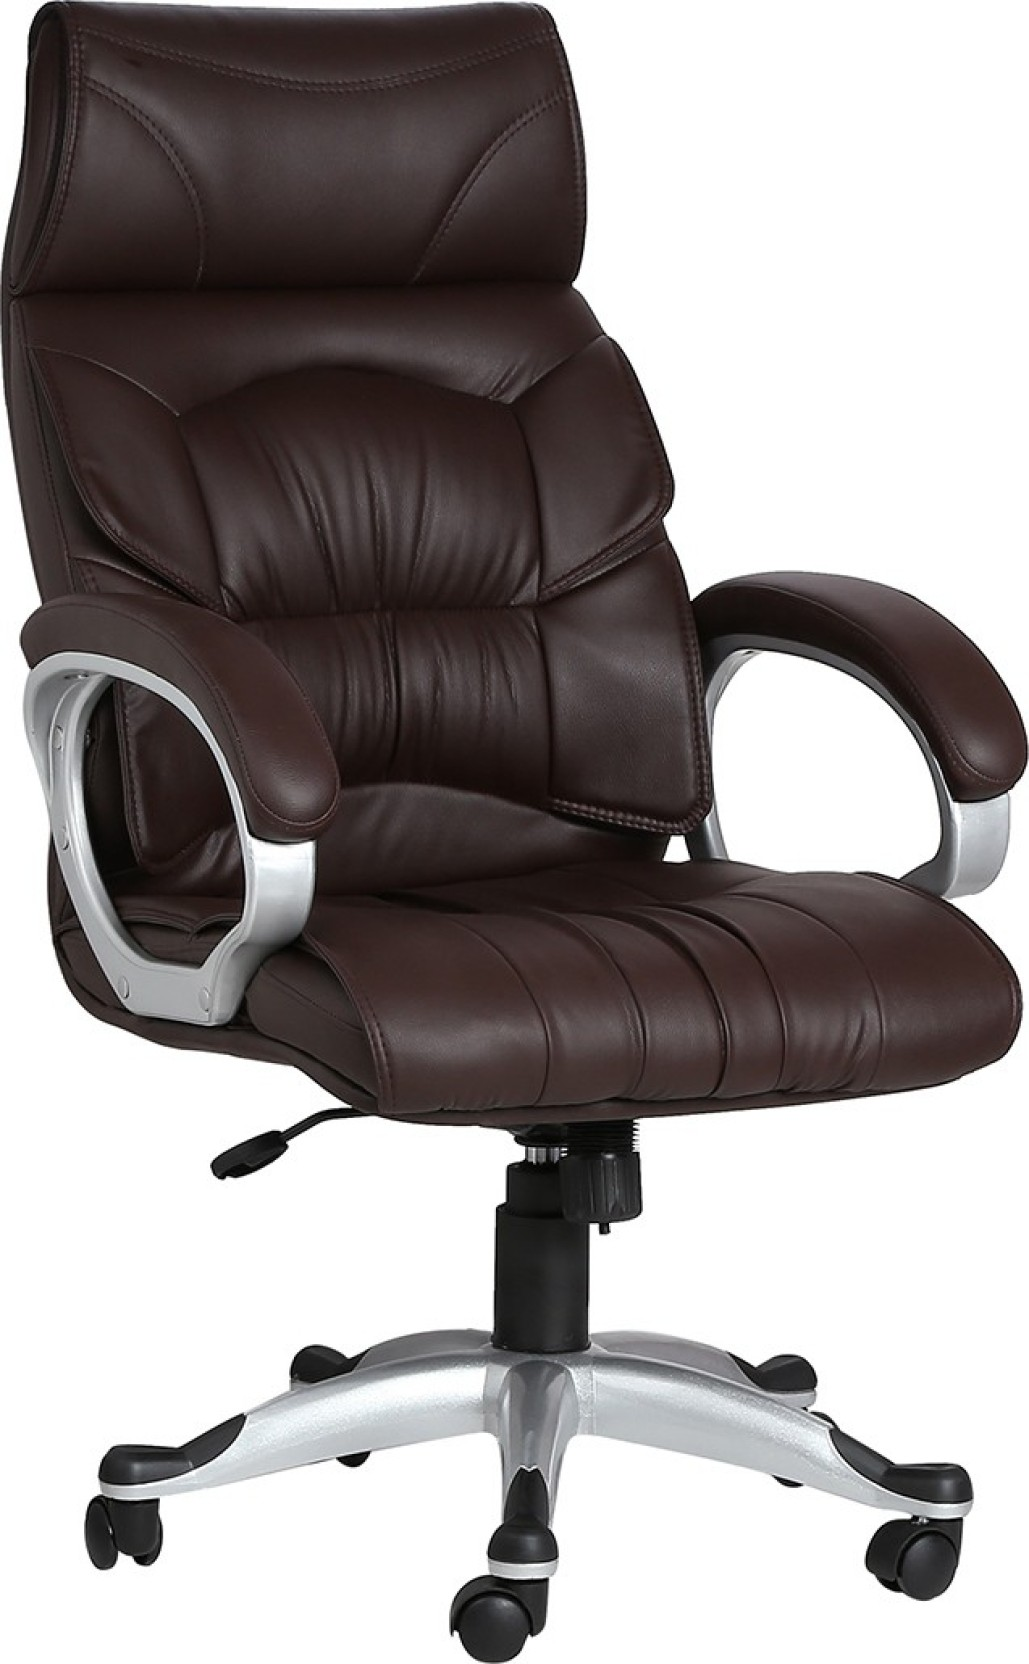 100 Online Office Chairs Shopping India Office  : leatherette vj 424 vj interior original imaeqcuw65mphurs from mitzissister.com size 1029 x 1664 jpeg 175kB